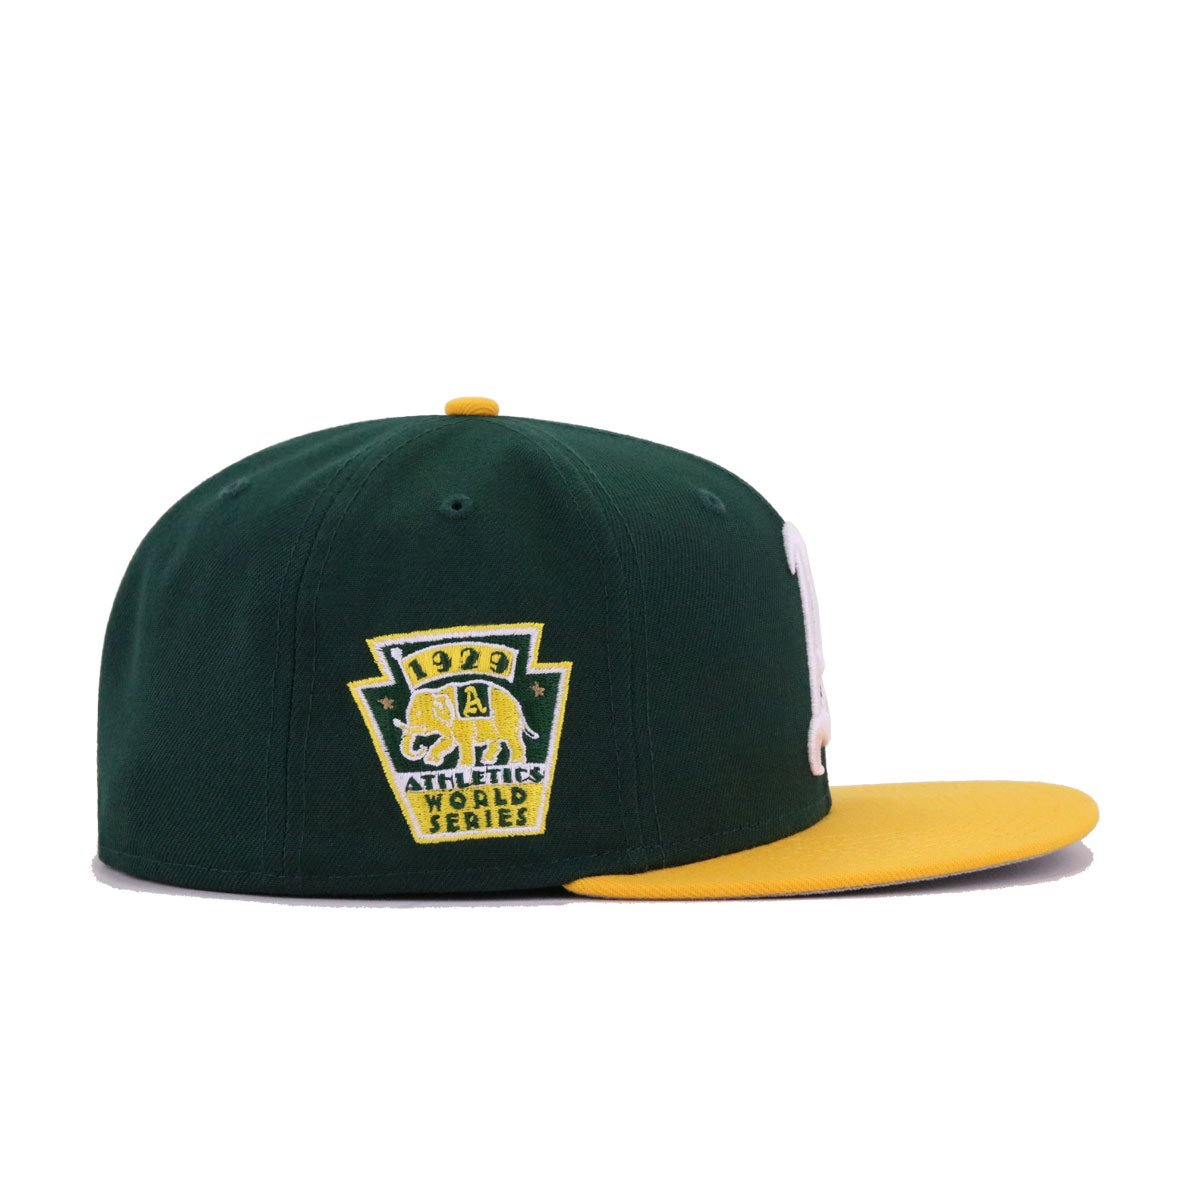 Philadelphia Athletics Dark Green A's Gold 1929 World Series New Era 59Fifty Fitted